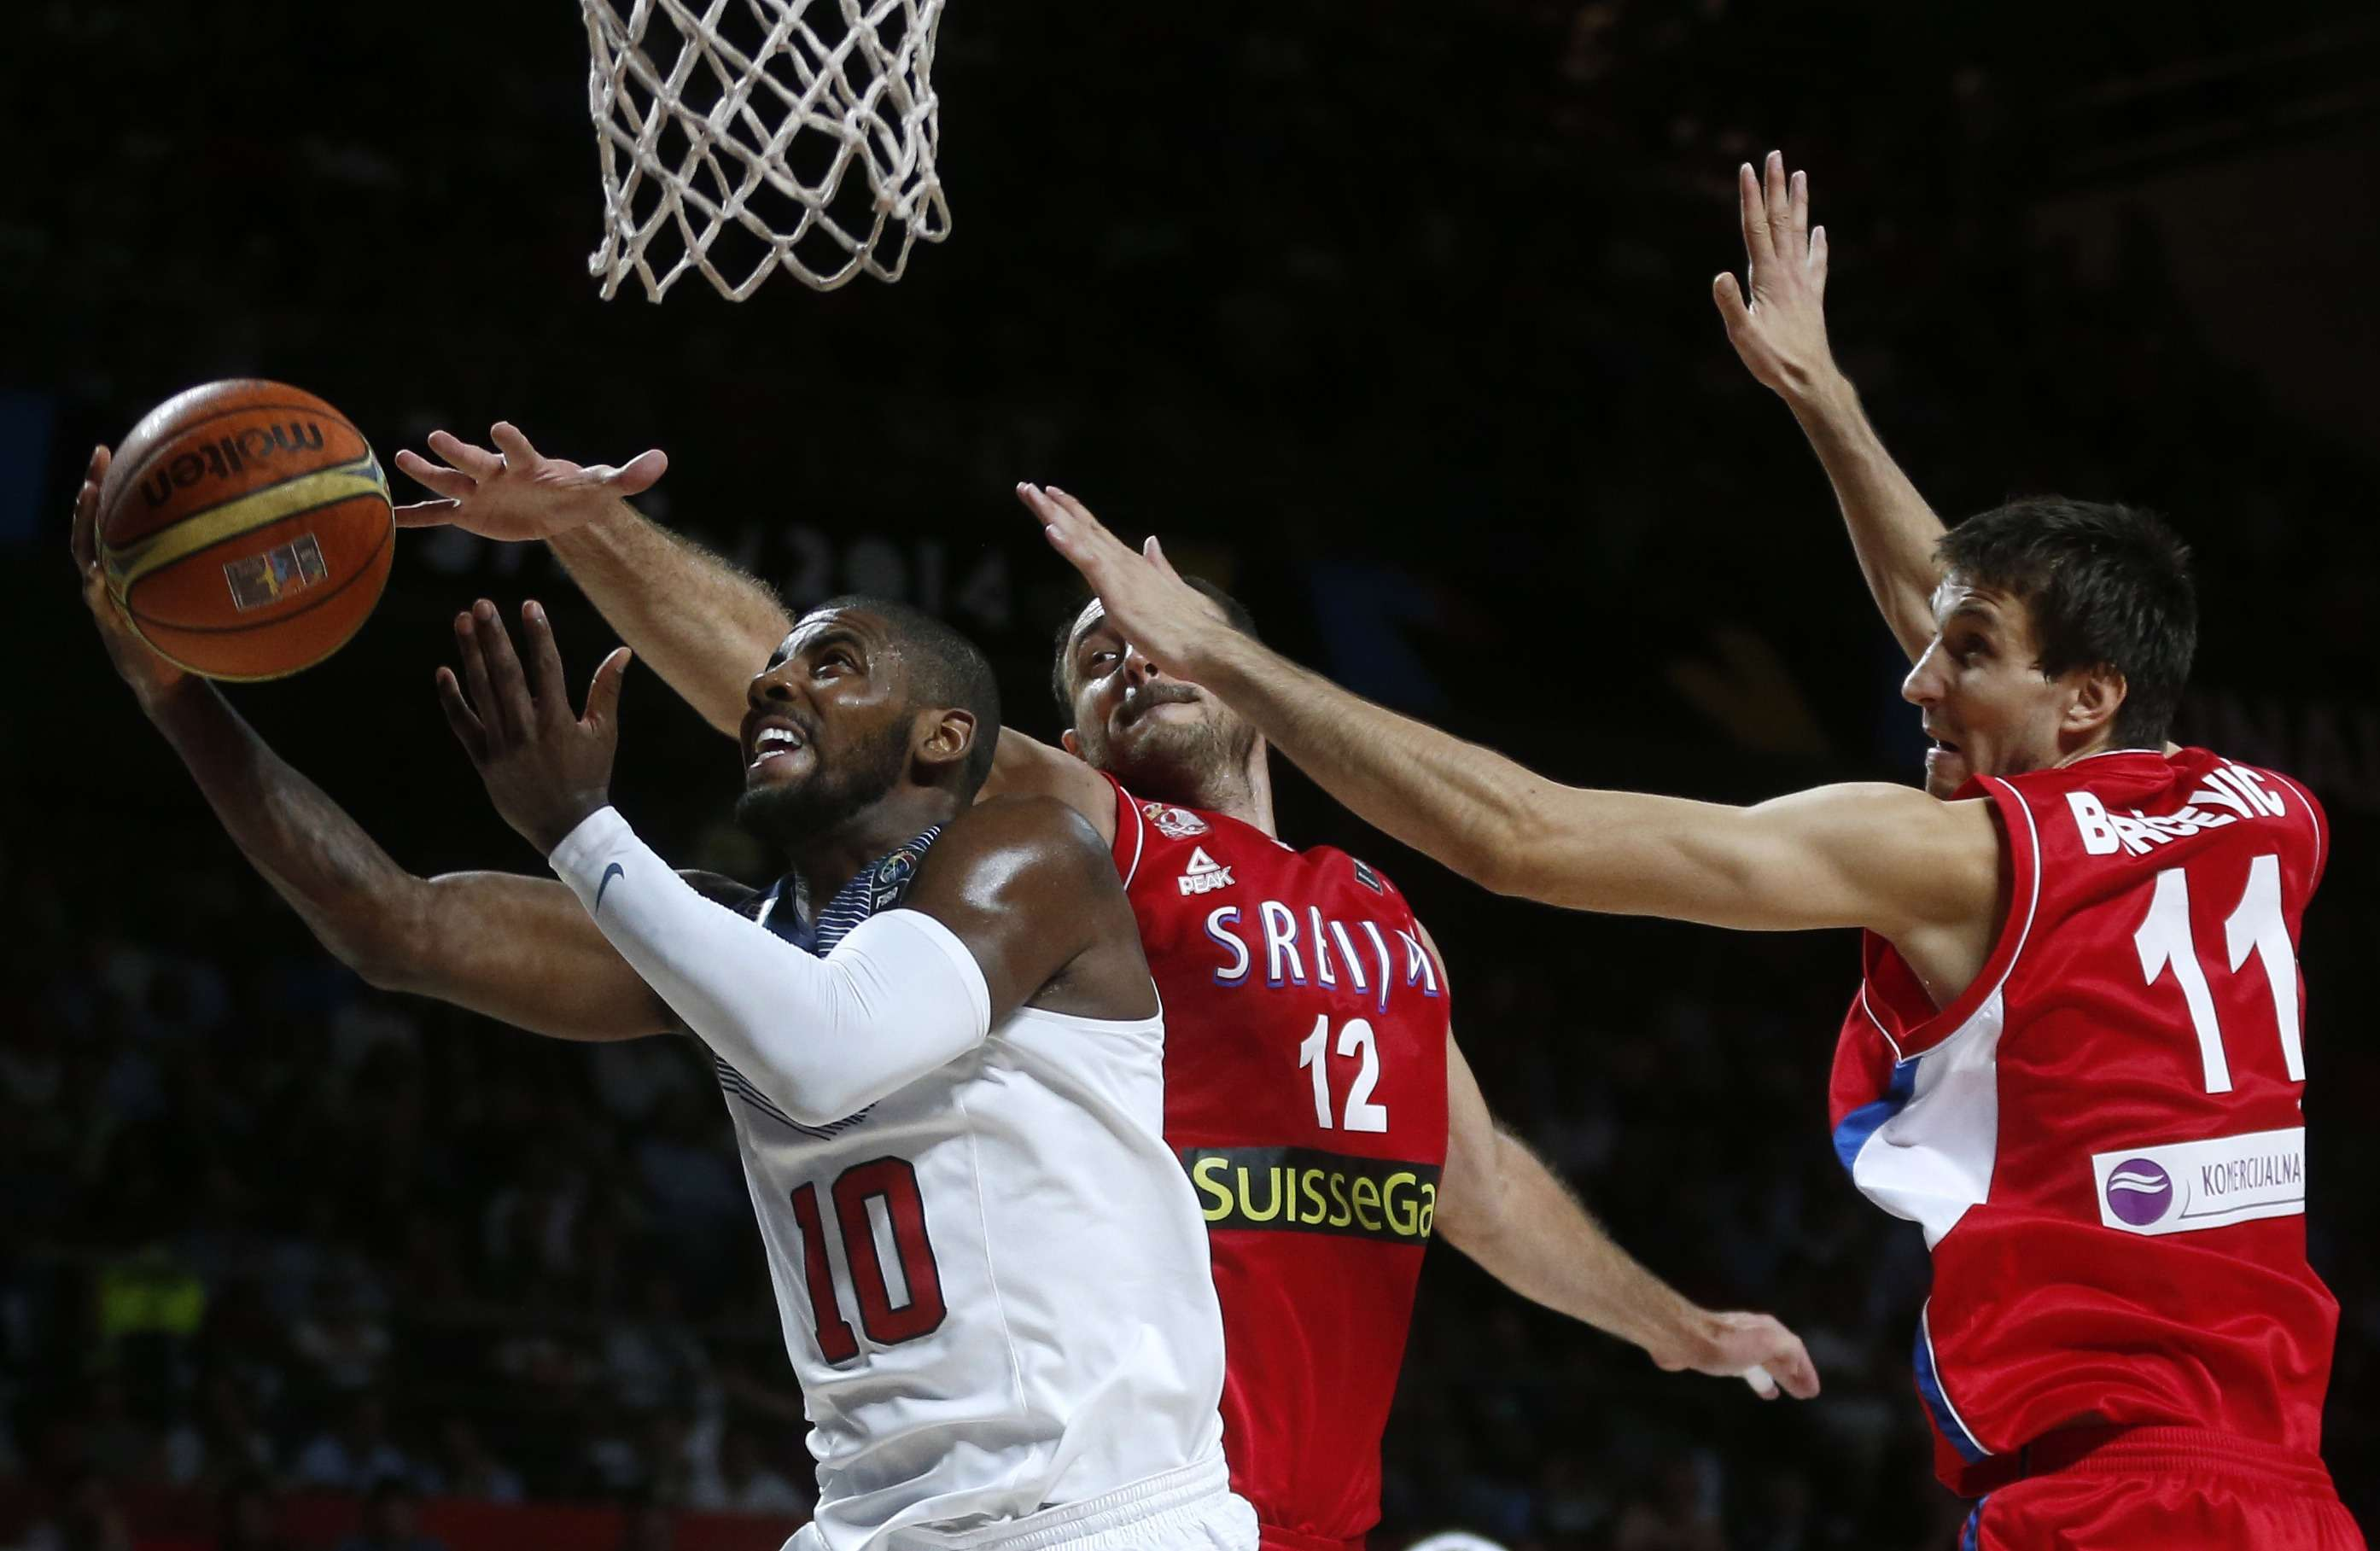 Kyrie Irving (L) of the U.S. goes up for a basket past Serbia's Nenad Krstic (C) and Stefan Bircevic during their Basketball World Cup final game in Madrid September 14, 2014. REUTERS/Juan Medina (SPAIN - Tags: SPORT BASKETBALL TPX IMAGES OF THE DAY) Foto: JUAN MEDINA/REUTERS